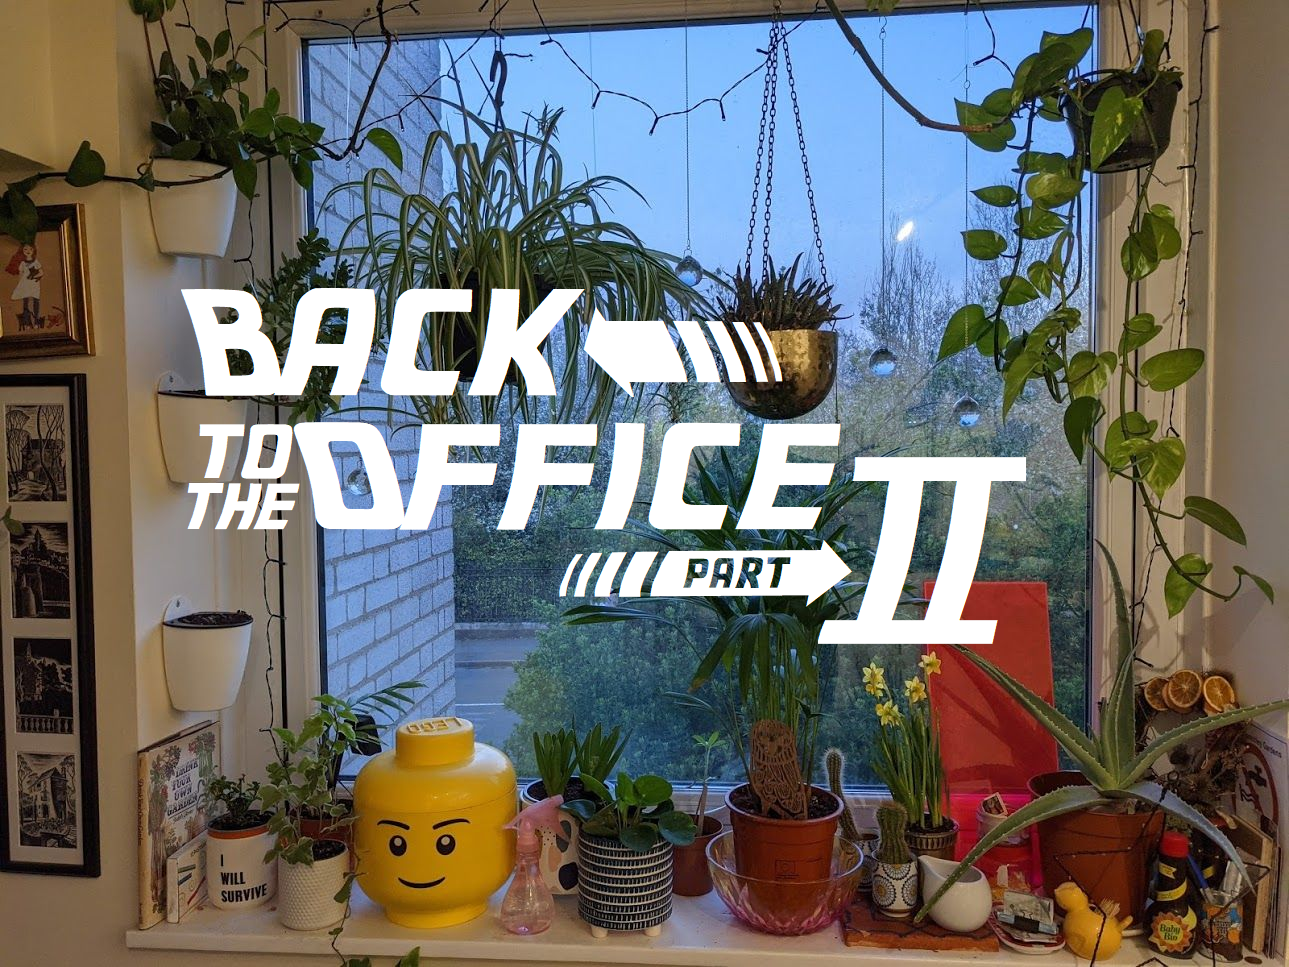 Back to the office: Part II